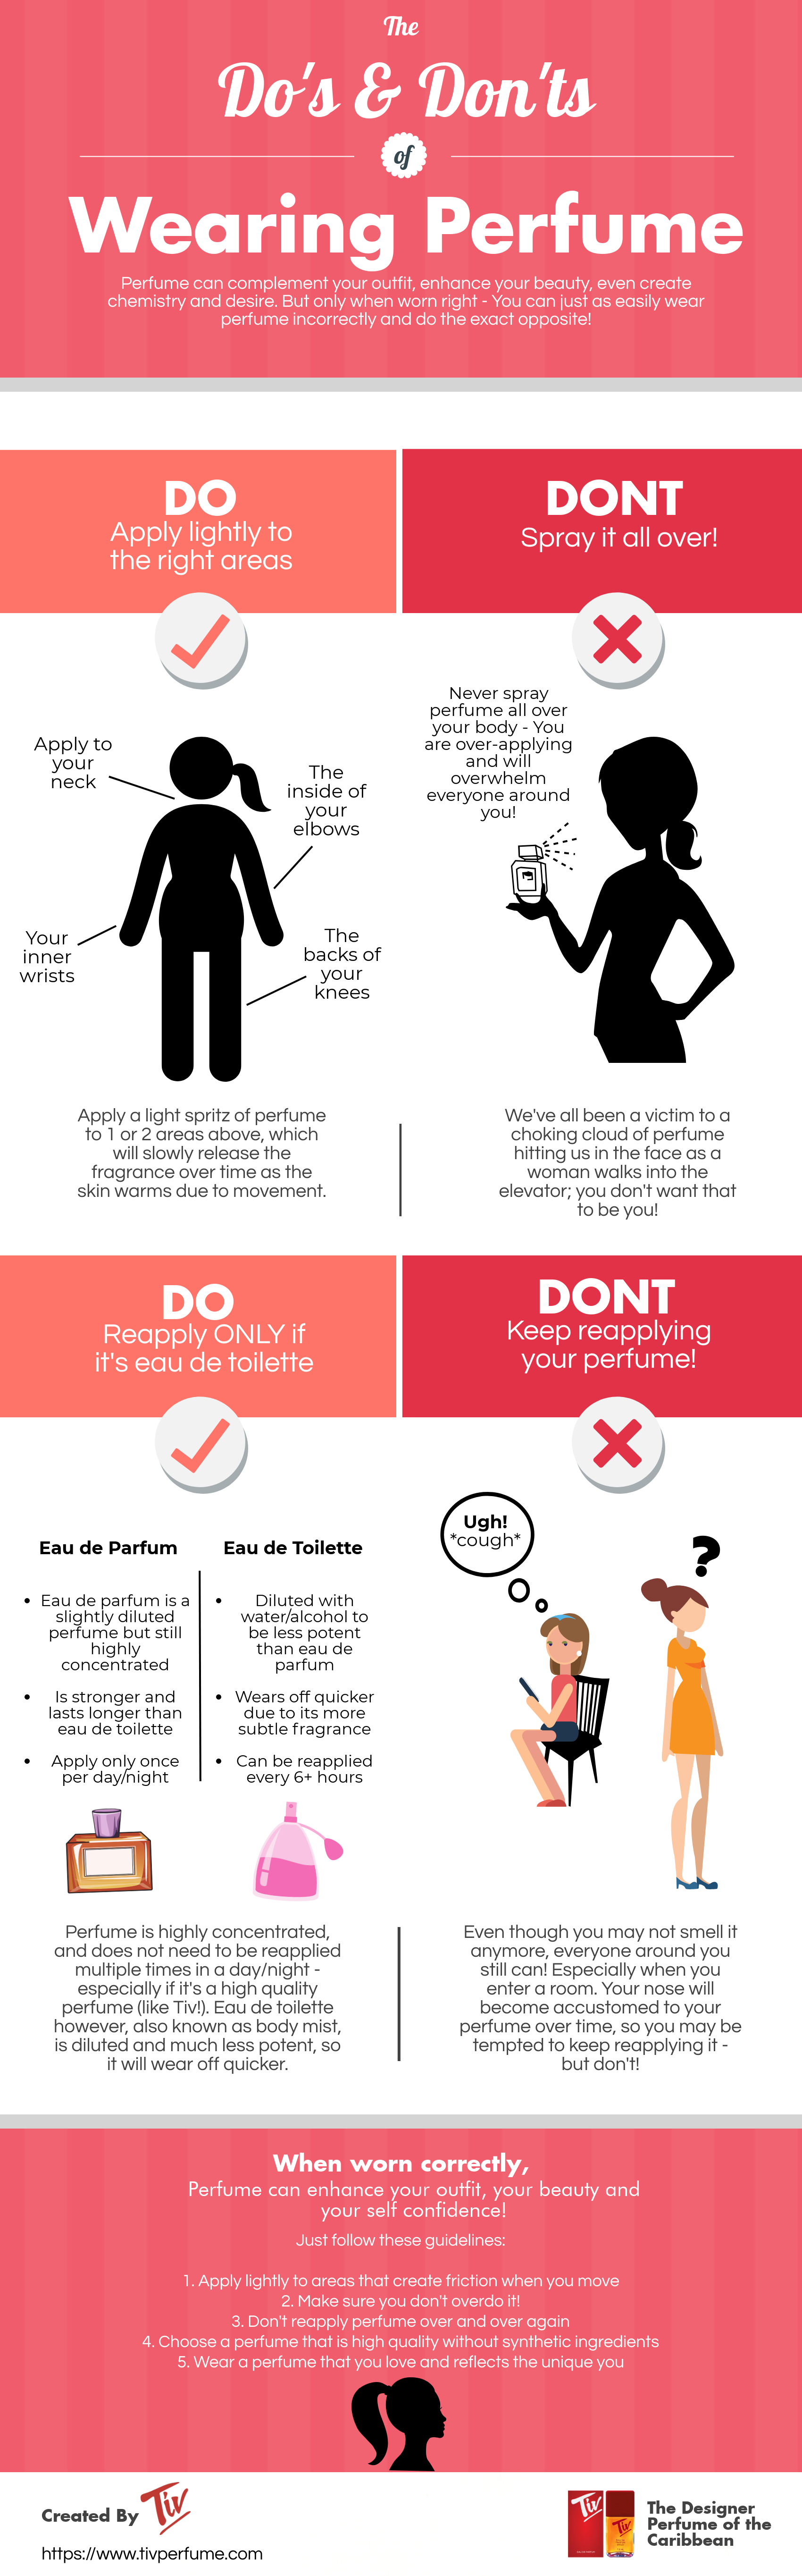 Dos and Donts of Wearing Perfume Infographic